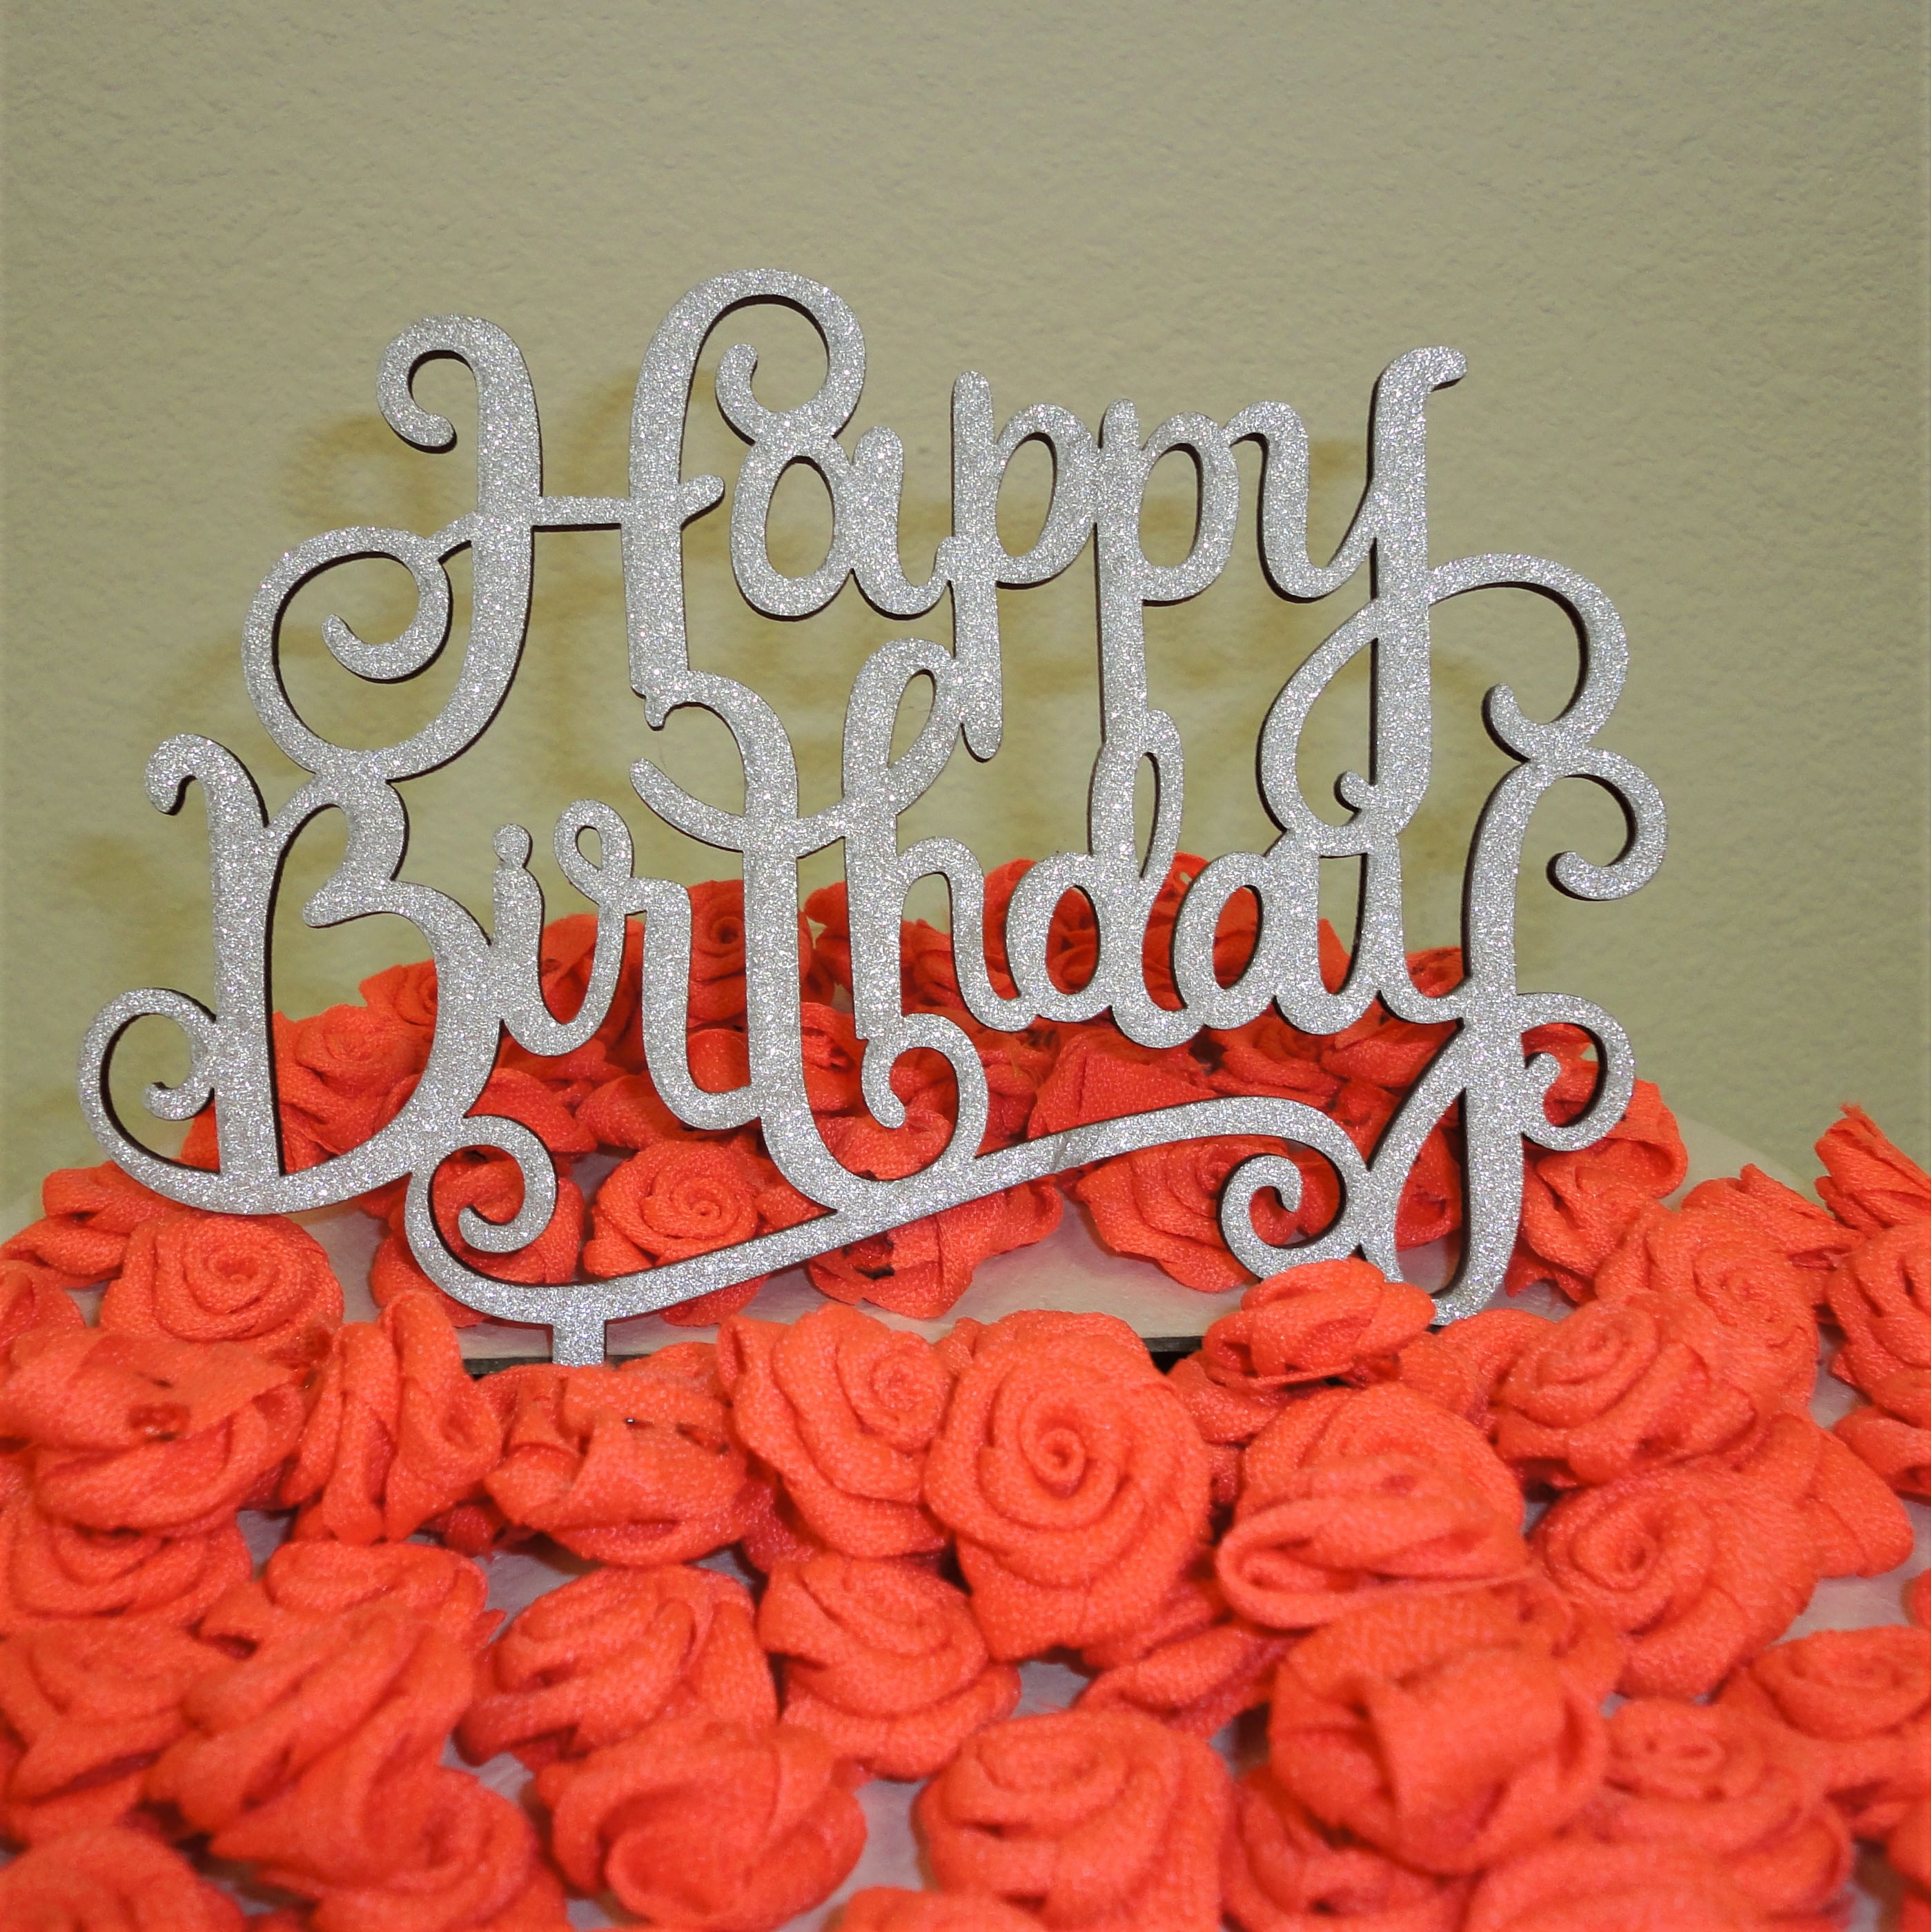 Charmed Happy Birthday Glittered Cake Topper; Silver